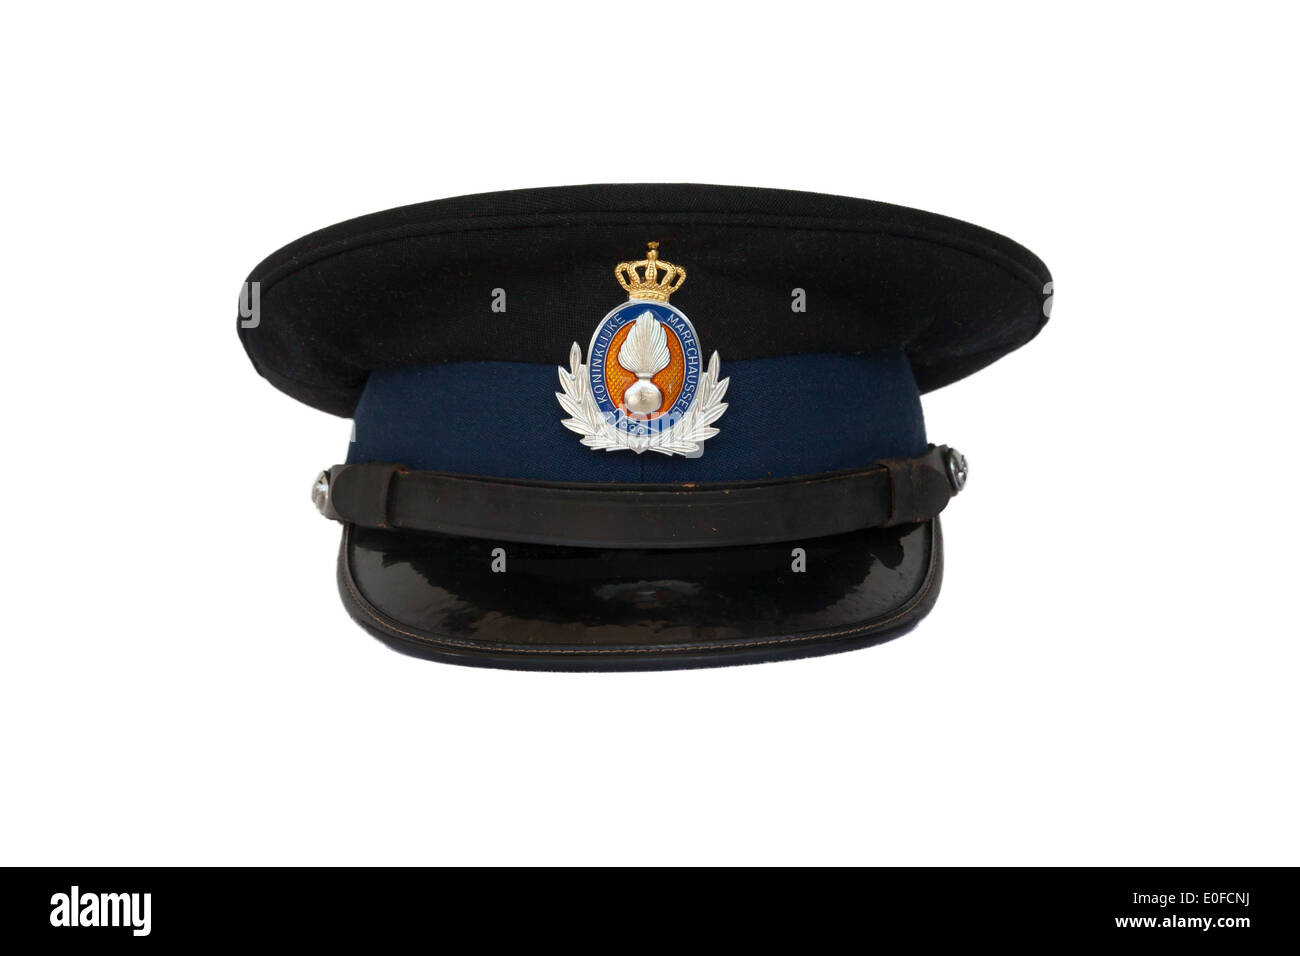 Clothing of the dutch military police, close-up - Stock Image